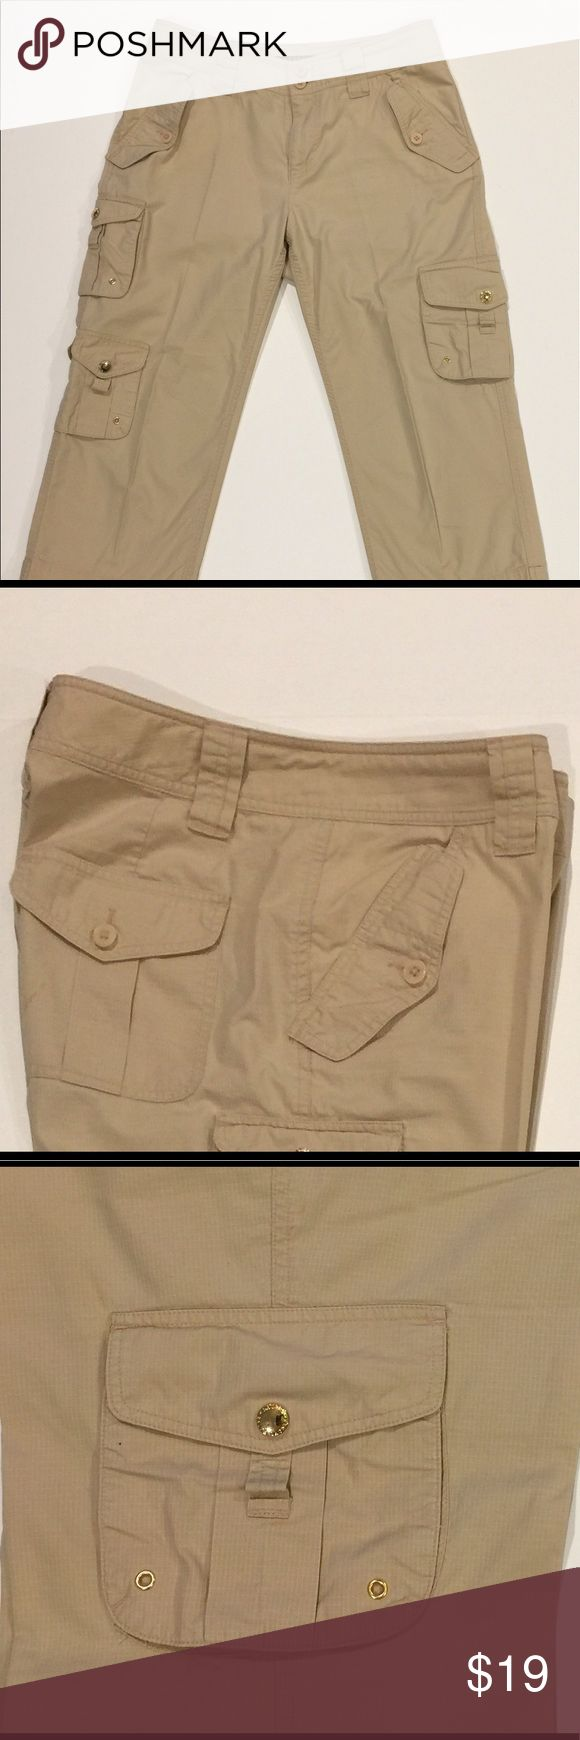 """Lauren Ralph Lauren Pants Cargo Khaki Pockets Zip Lauren Ralph Lauren Women's Pants Cargo Capri Khaki Pockets Zips Sz 6 Cotton  Size: 6 Waist: 32"""" Inseam: 21"""" Rise 9 1/2"""" Color: khaki  Condition: excellent Defects: None  This garment is in gentle used condition. There are no stains, spots, pills, or signs of wear.  This item comes from a smoke free pet free environment. Please follow us on our store and never miss another sale! Lauren Ralph Lauren Pants Capris"""